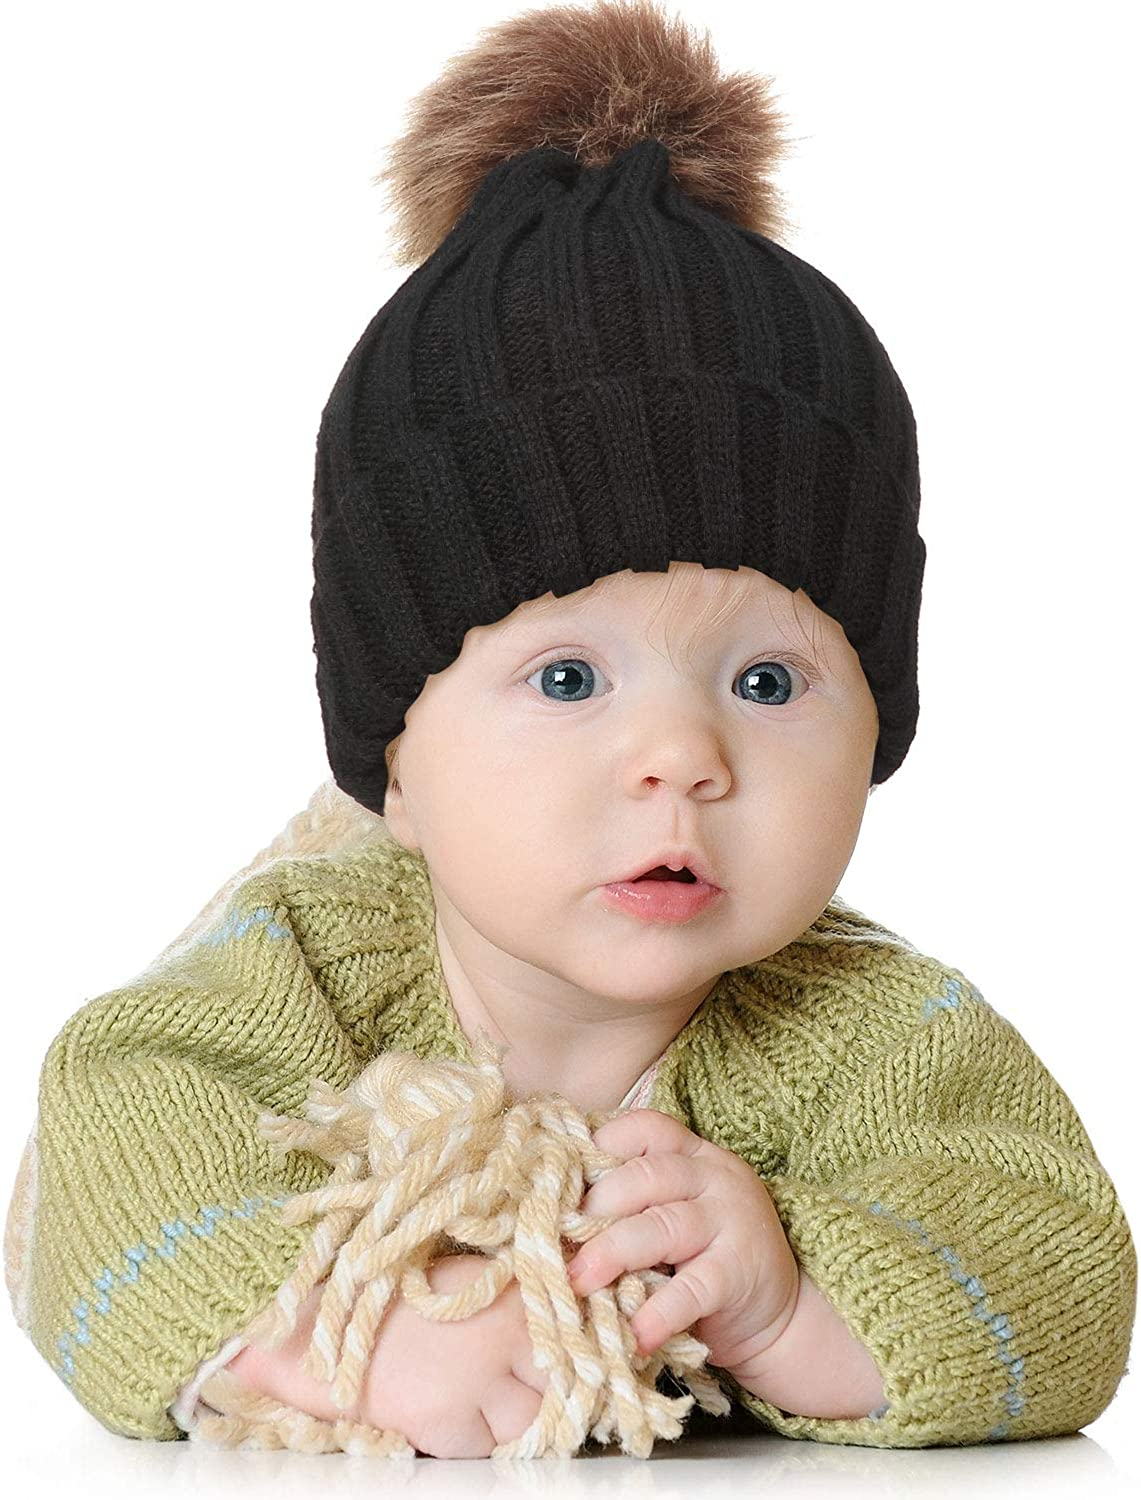 3 Pieces Knit Hat Scarf Gloves Set Toddler Warm Scarf for Boys Girls Winter Hat with Pom Pom